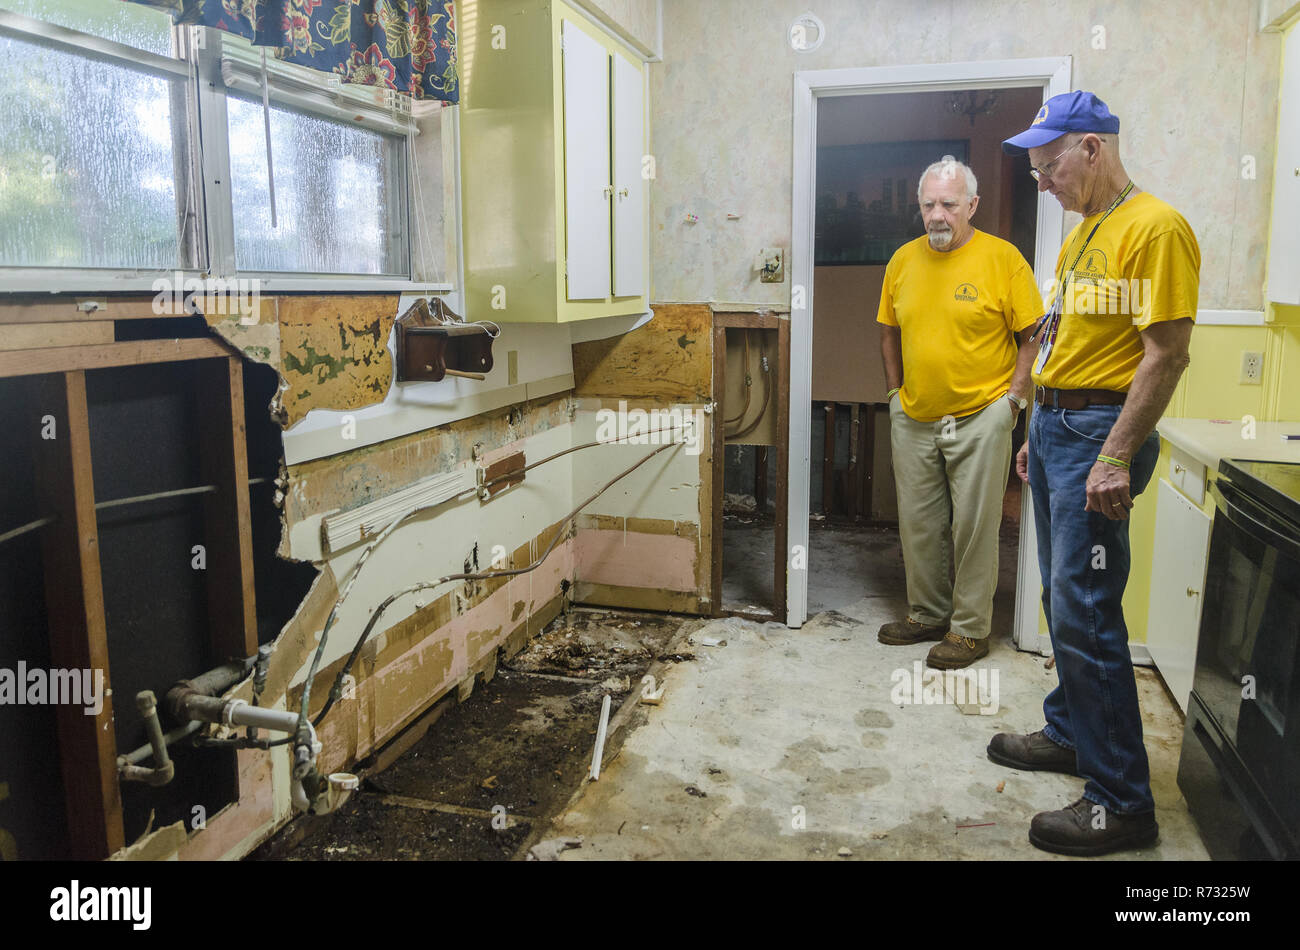 Southern Baptist Disaster Relief volunteers inspect a flood-damaged wall after a flood in Baton Rouge, Louisiana. Stock Photo